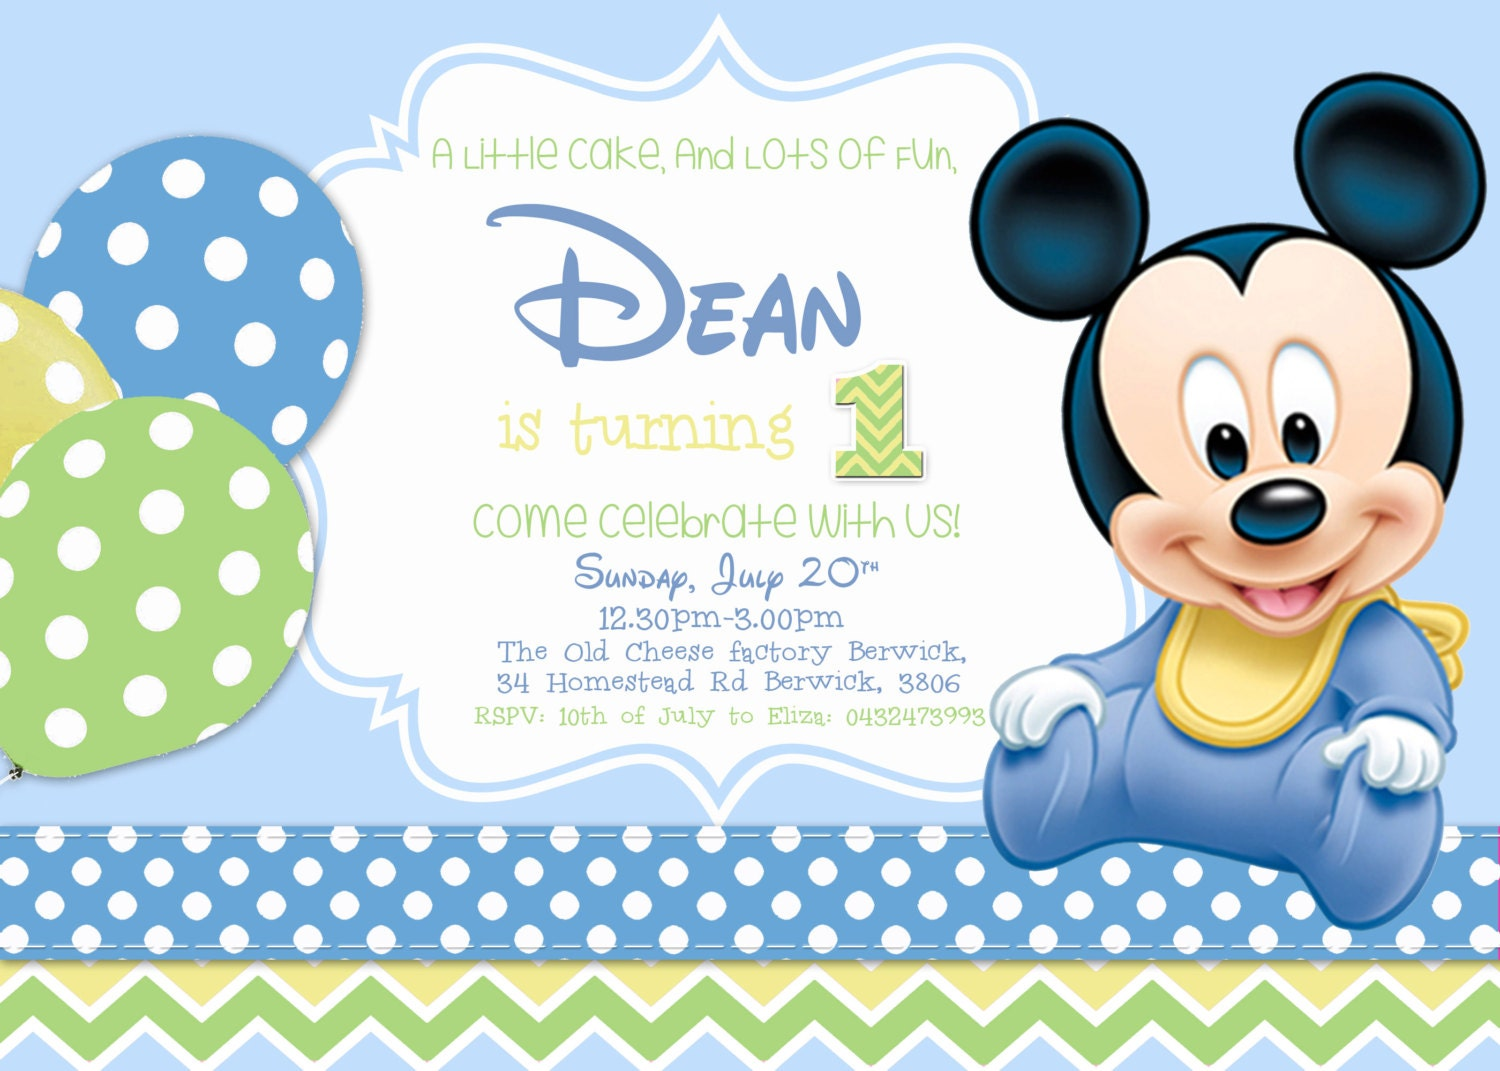 baby 1st birthday invitation sles - 28 images - baby s birthday ...